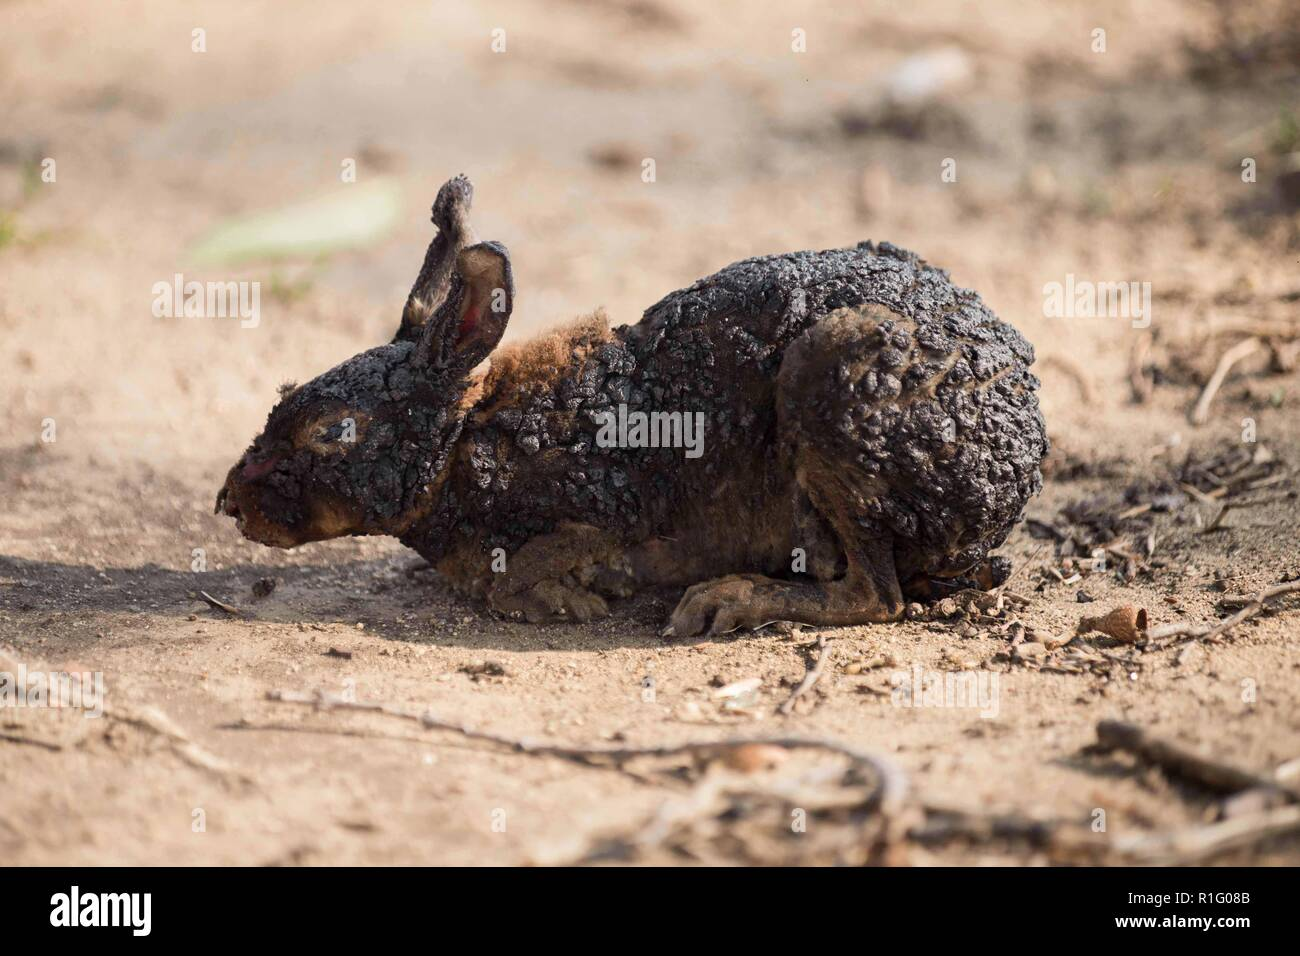 Malibu, California, USA. 12th Nov, 2018. A rabbit suffering from burns struggles to find safety, as the Woolsey fire continues to burn. Credit: Chris Rusanowsky/ZUMA Wire/Alamy Live News Stock Photo